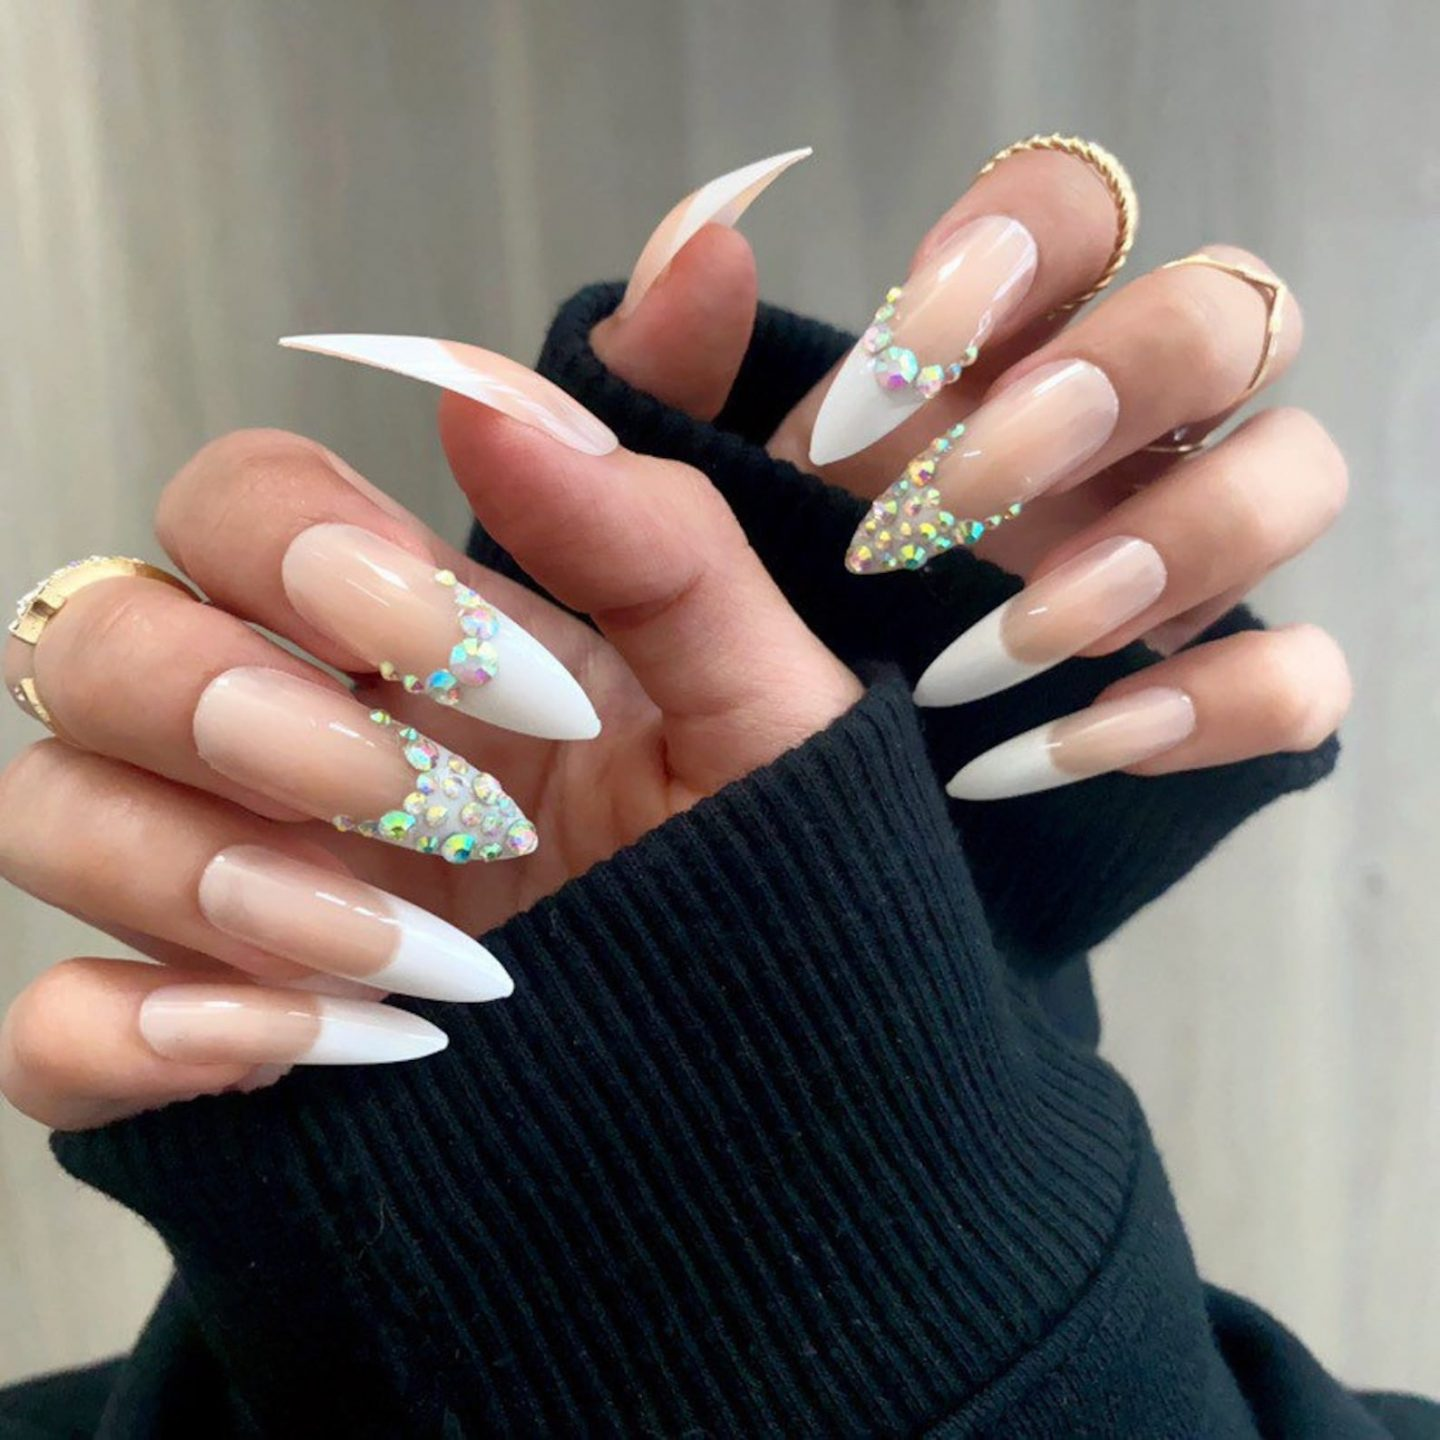 Long French tip nails with rhinestones